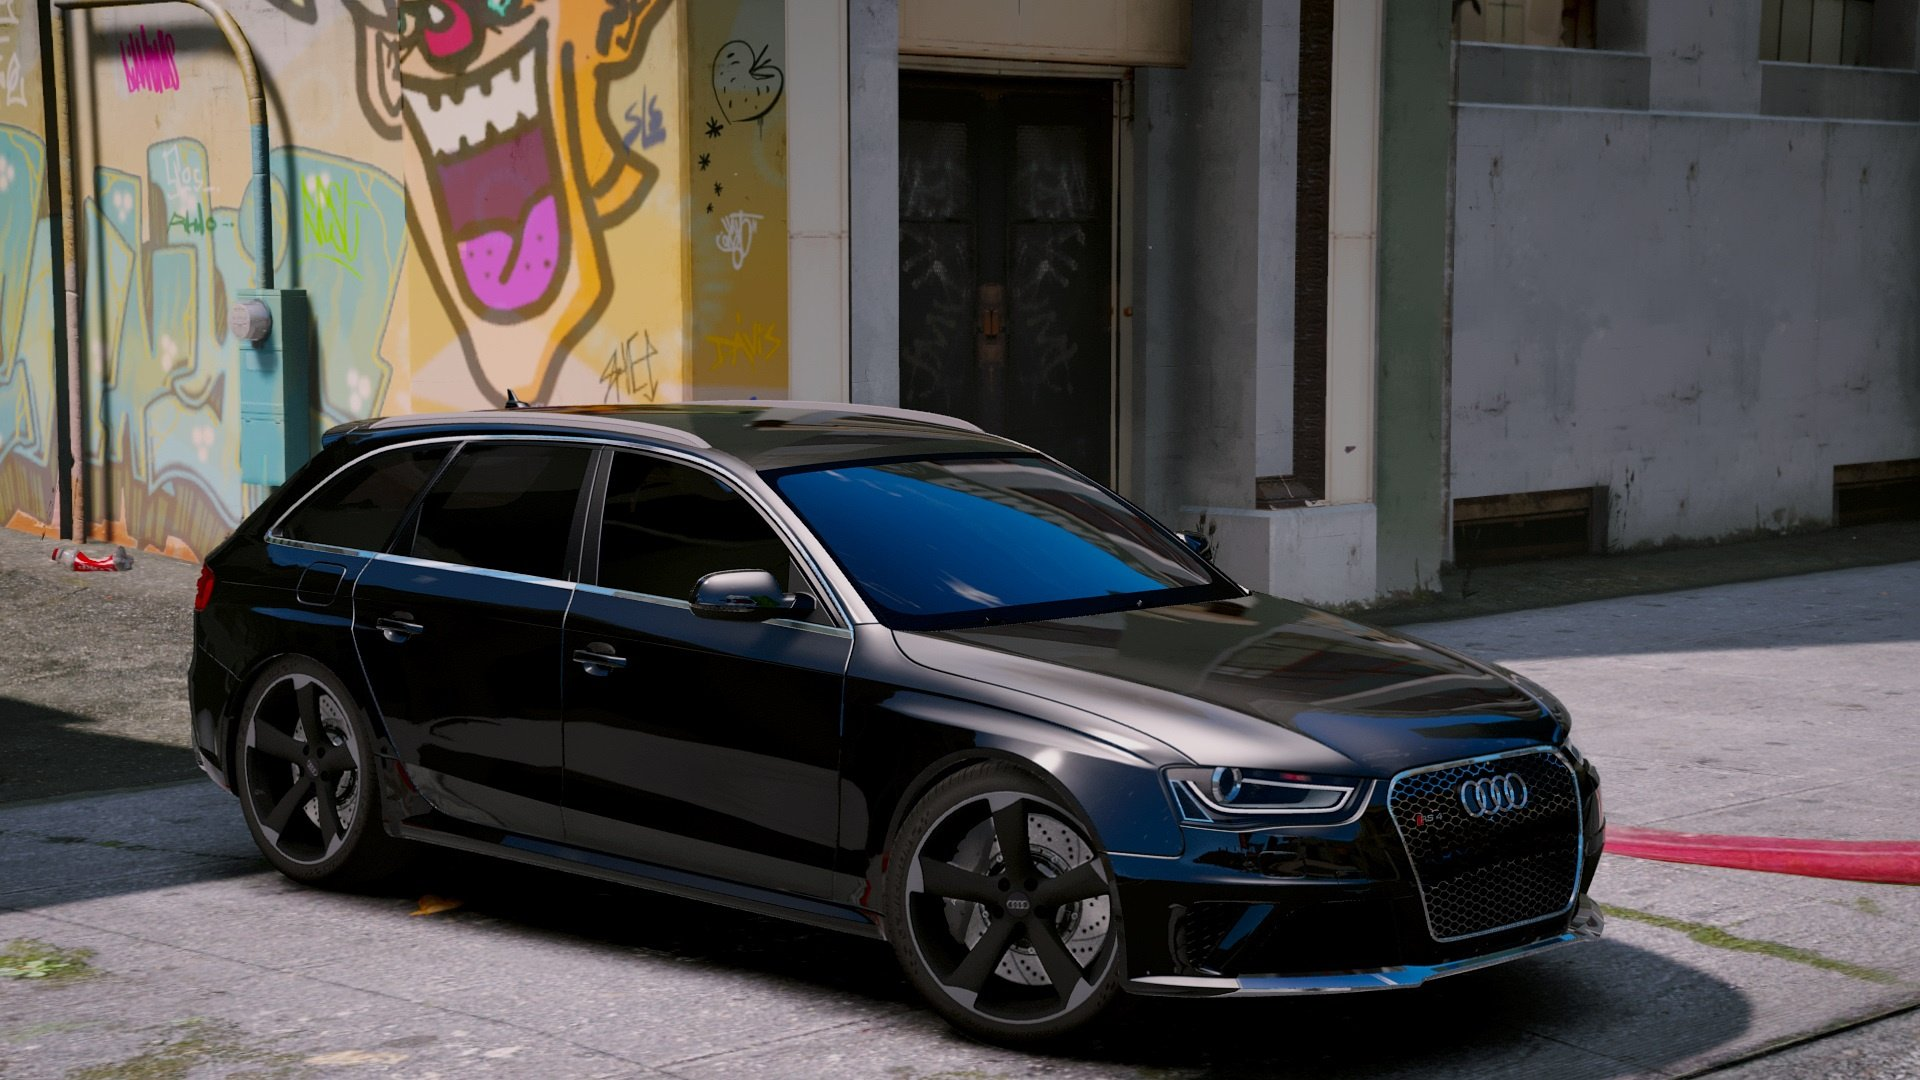 Audi Rs4 Avant 2013 Add On Tuning Gta5 Mods Com